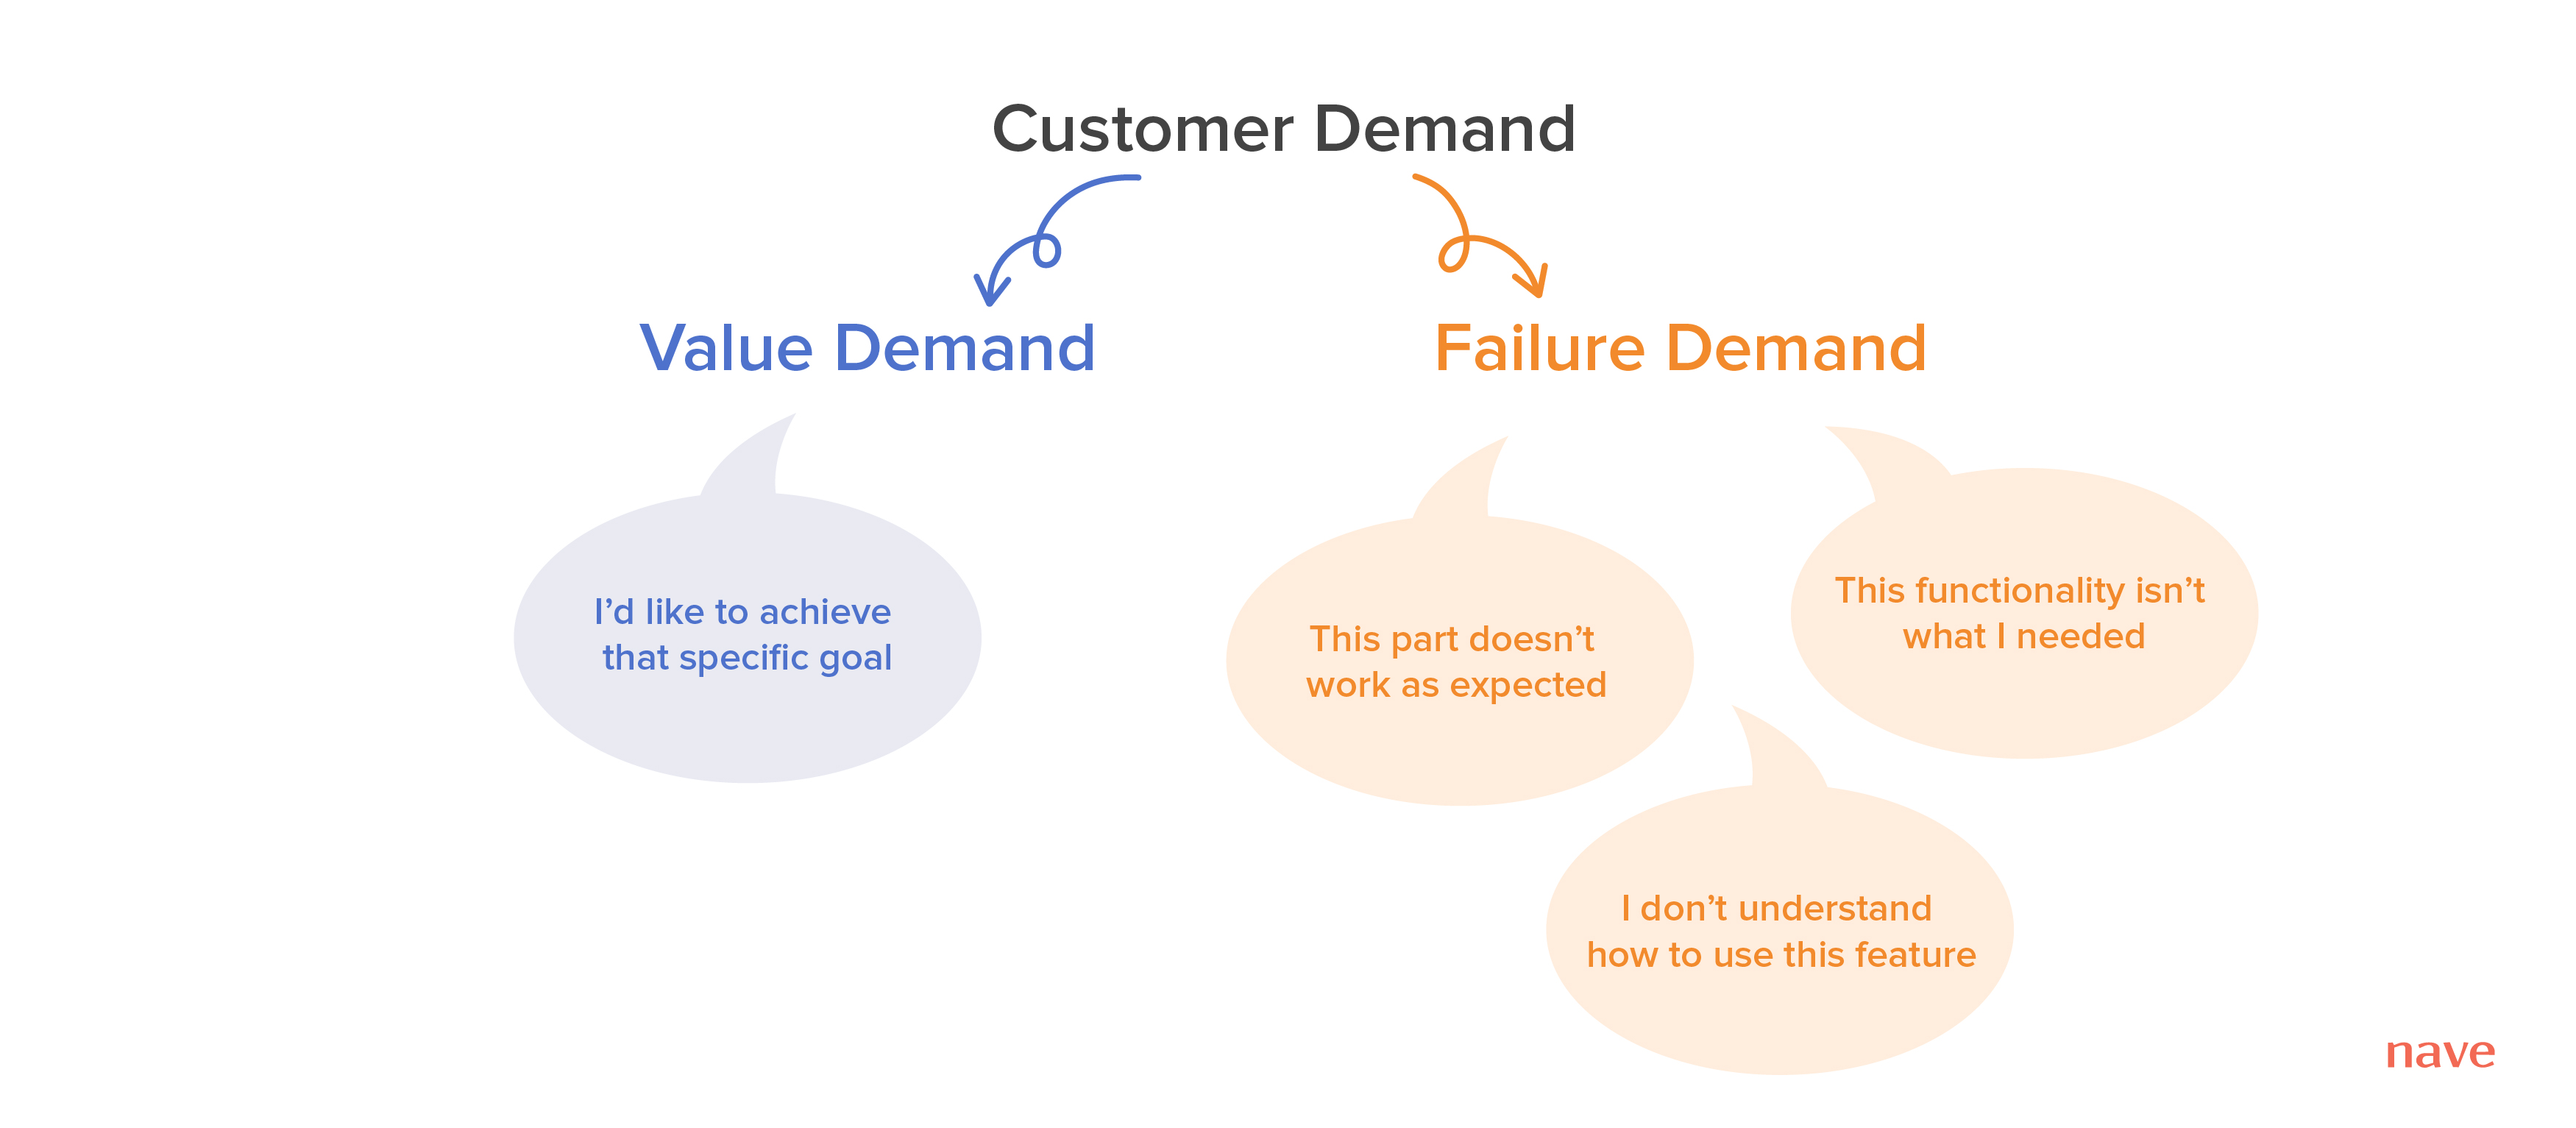 Customer demand - value demand and failure demand